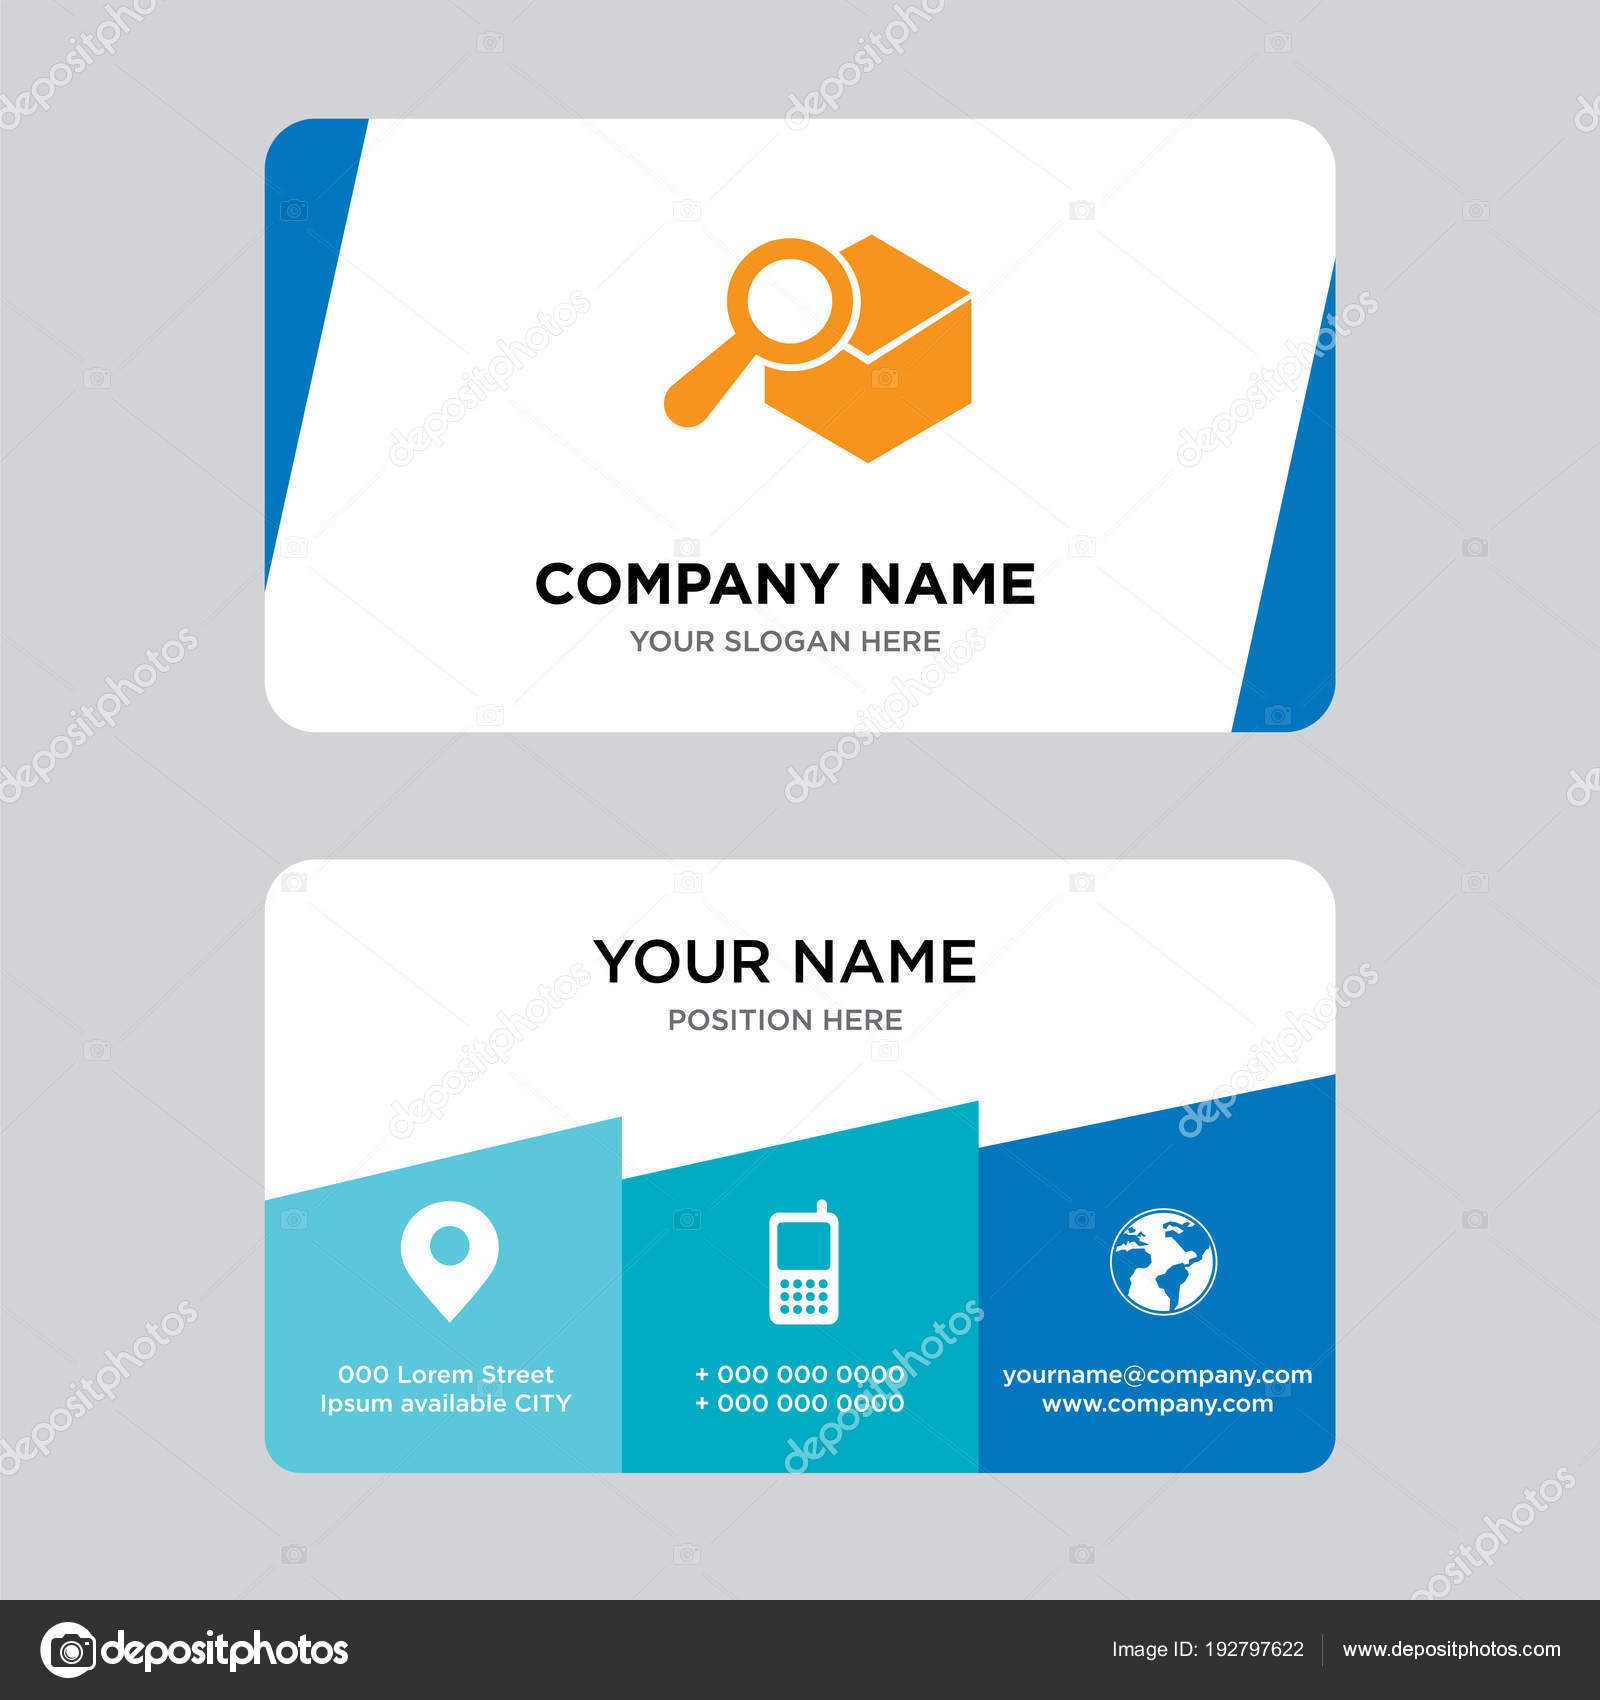 Search delivery service tool business card design template — Stock ...